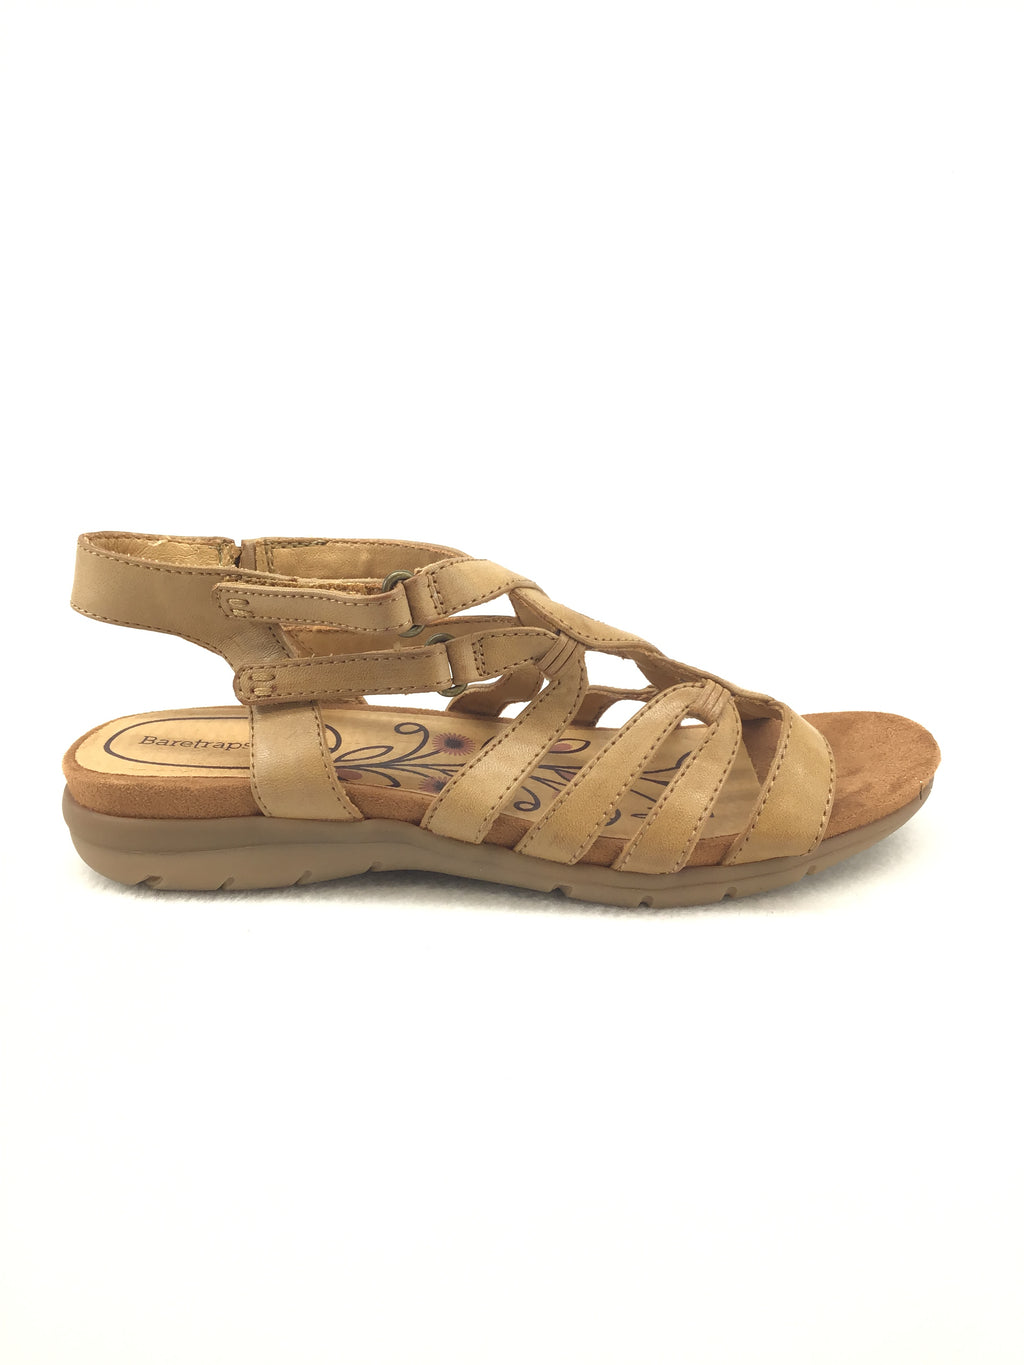 Bare Traps Kaylyn Caged Sandals Size 7.5M